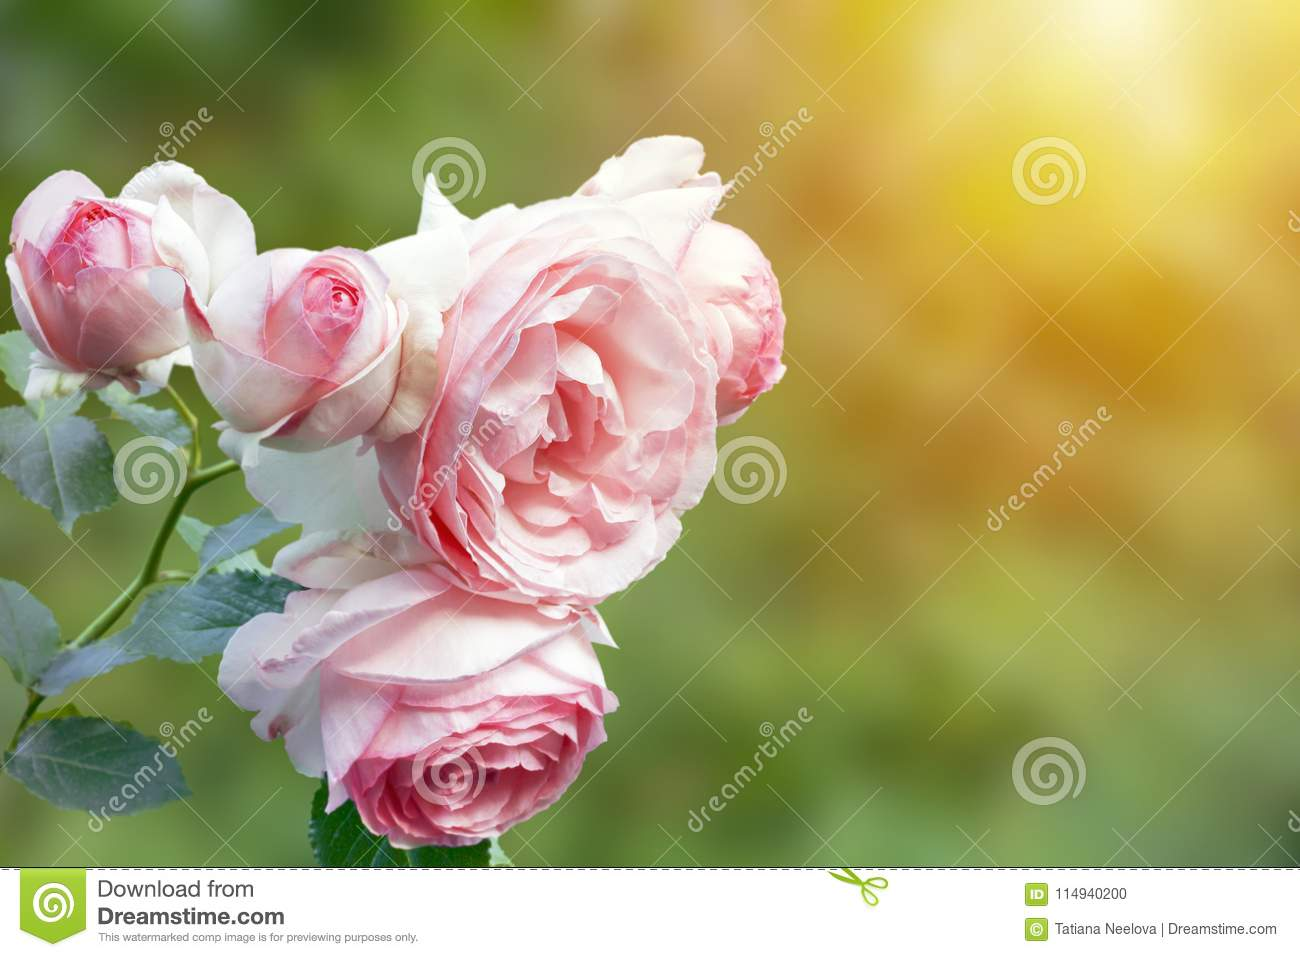 A photo of english pink pale rose bush in the summer garden. Rose shrub in the park, outdoor. Sunshine beams with selective soft f